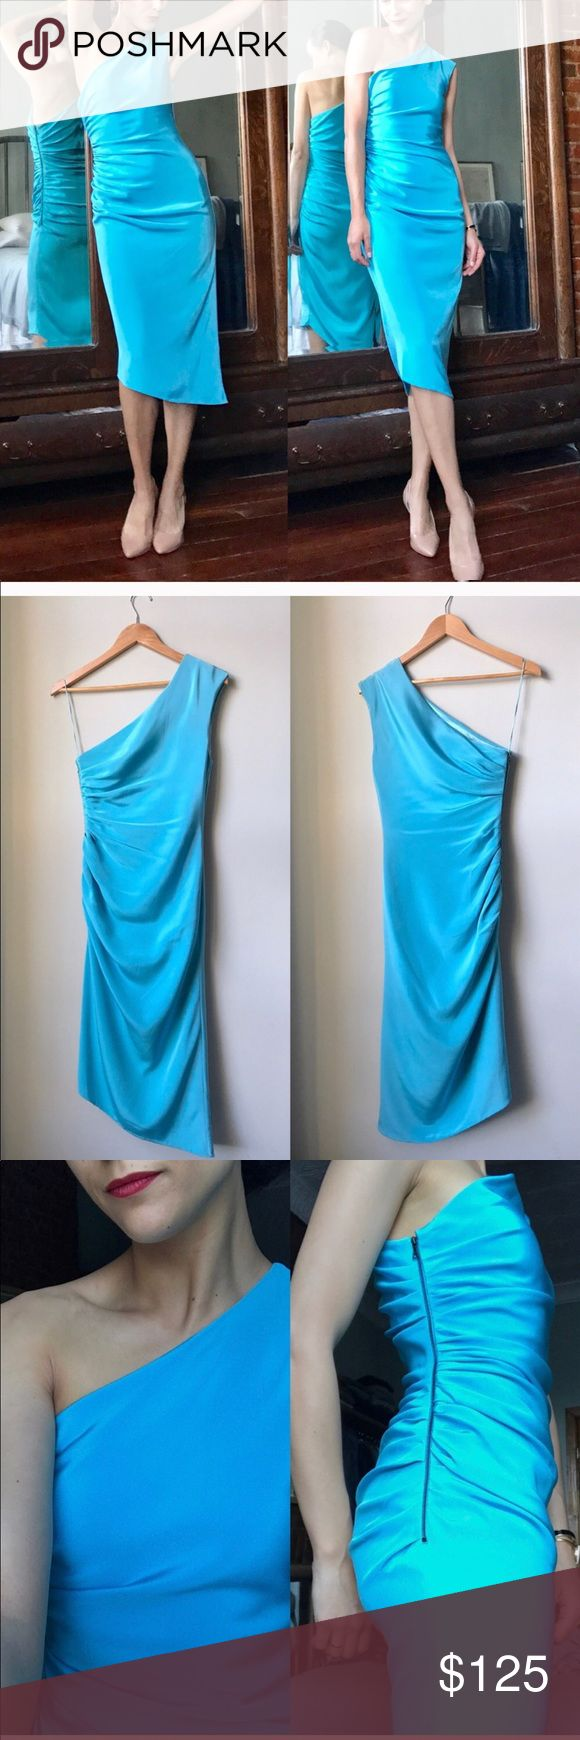 Designer Glacier Ice Dress Excellent used condition! Tag size 4, fits like a small. This gorgeous dress will draw attention to you as well as hide any imperfections. It is stretchy and has great cinching that hides all. Prabal Gurung Dresses Midi